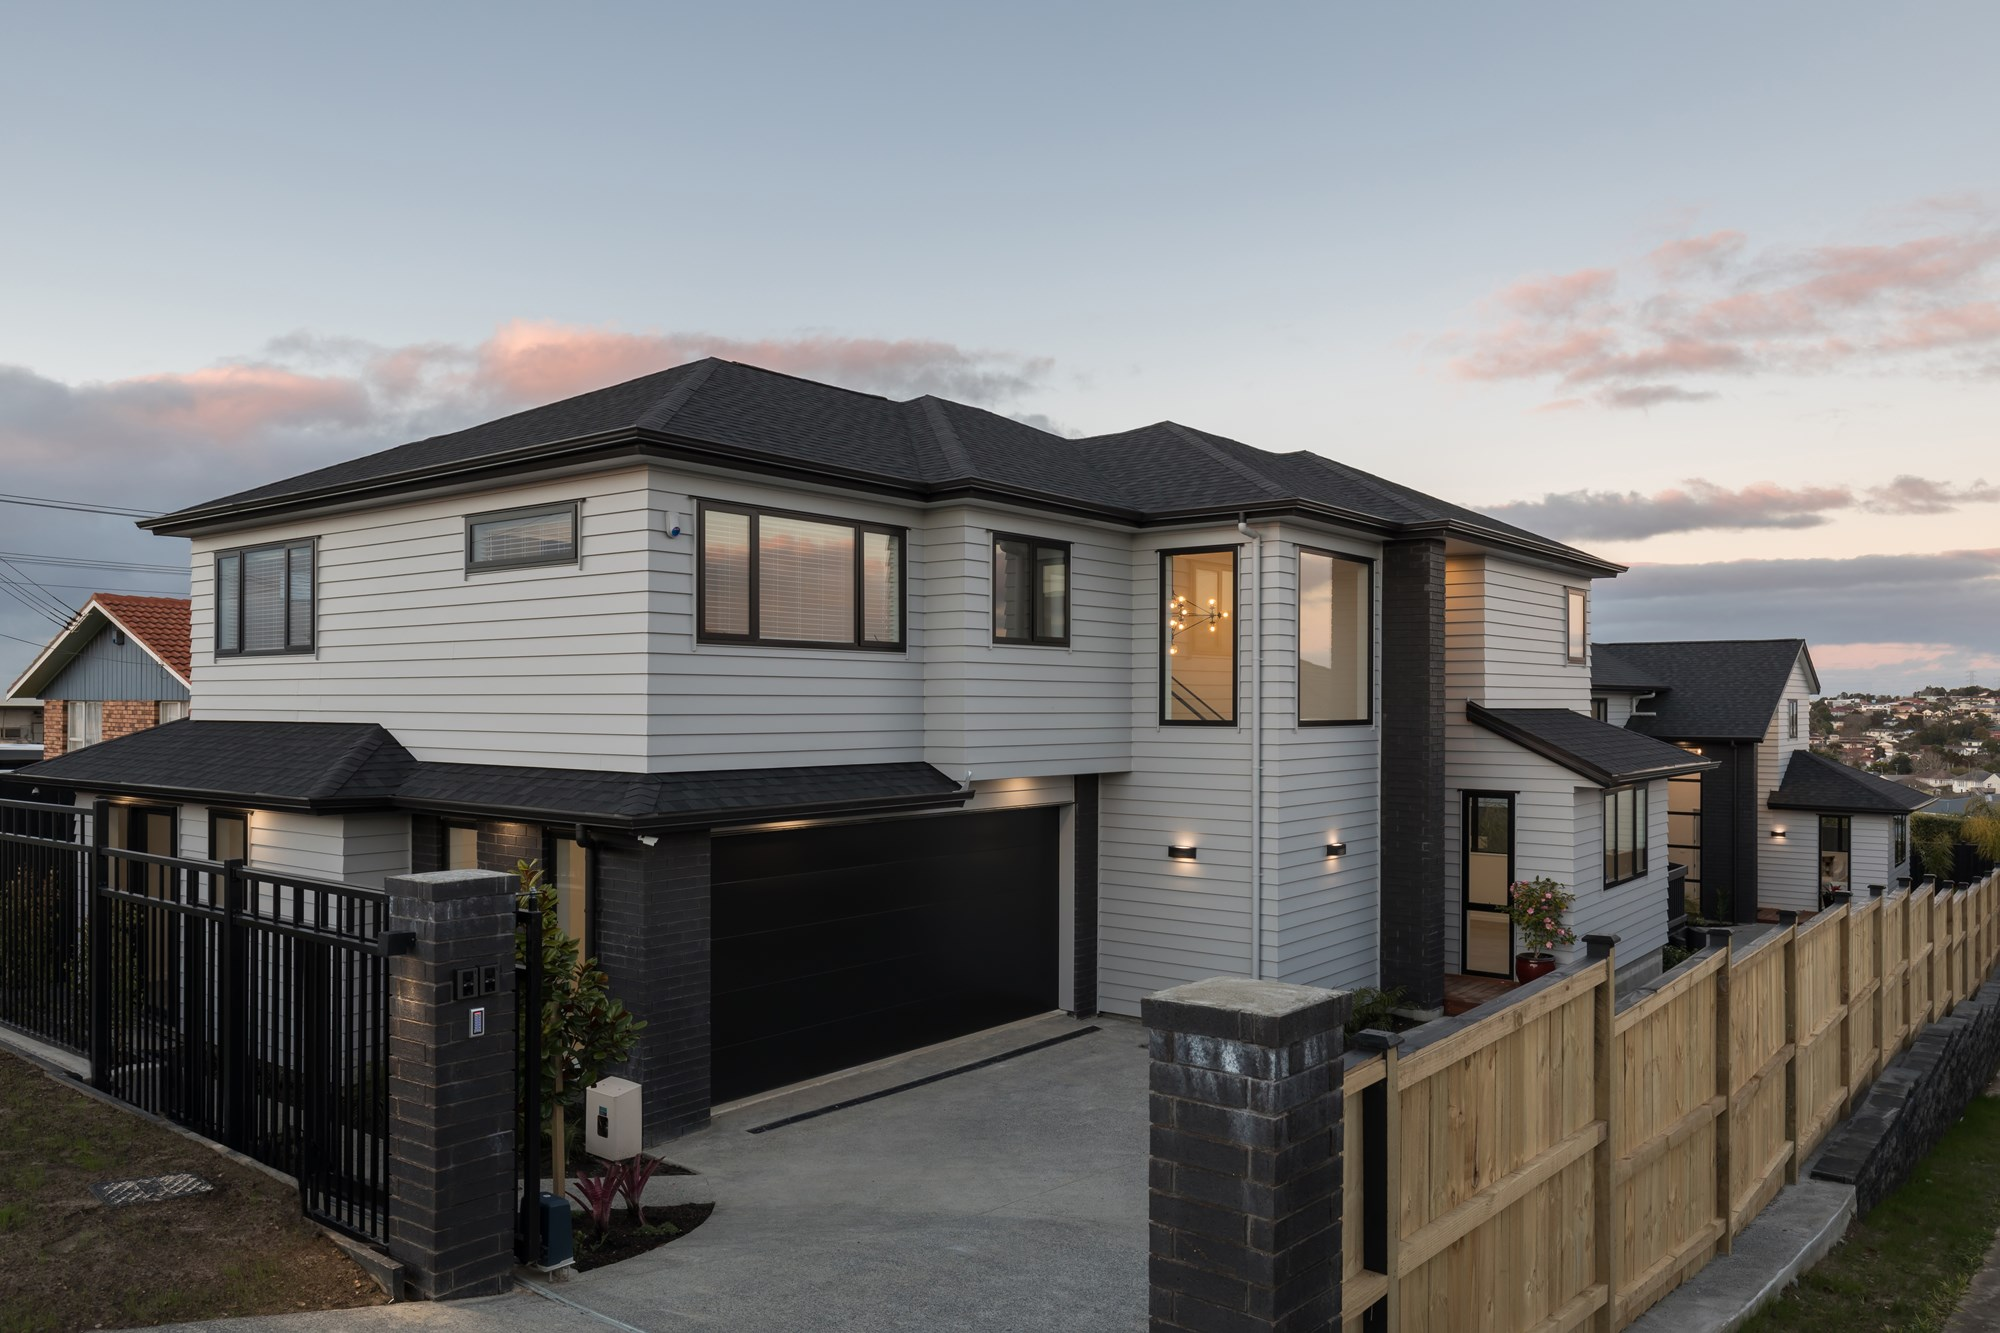 Multi Unit Development - Dominion Road - Roskill South